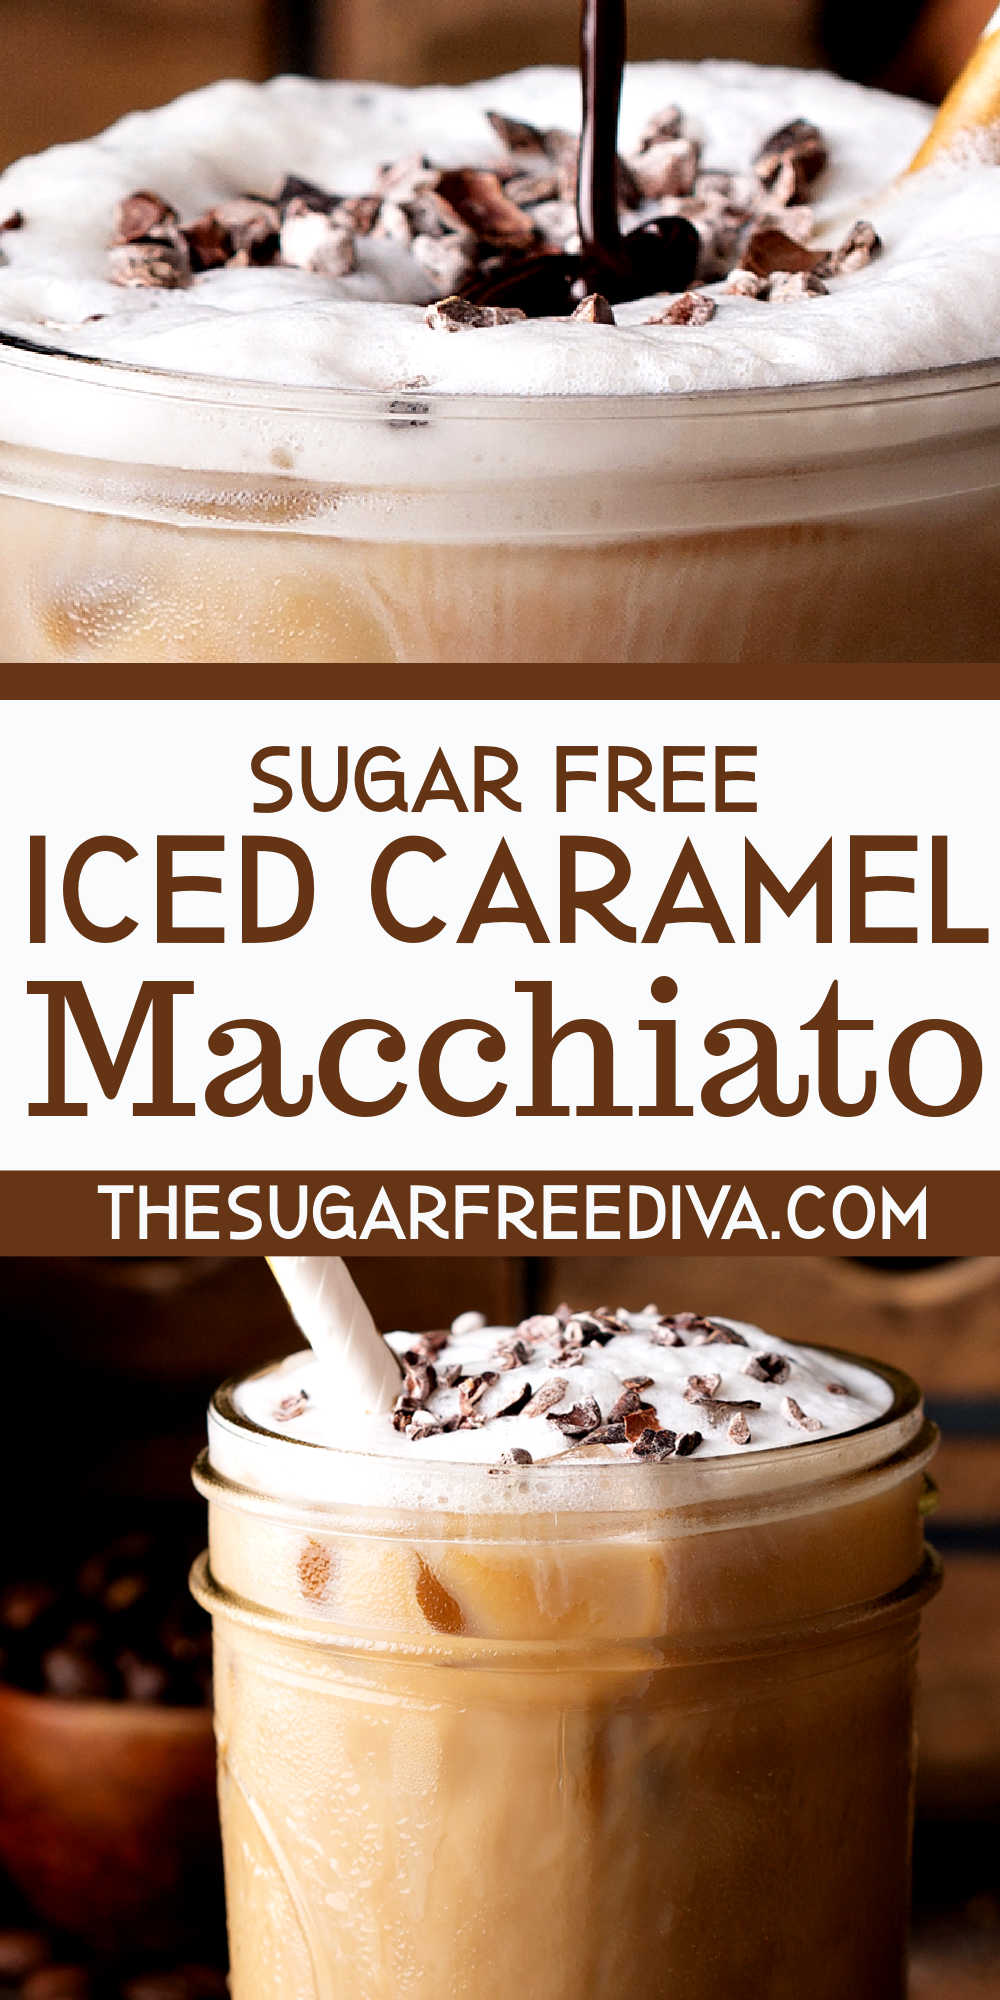 Sugar Free Iced Coffee Macchiato